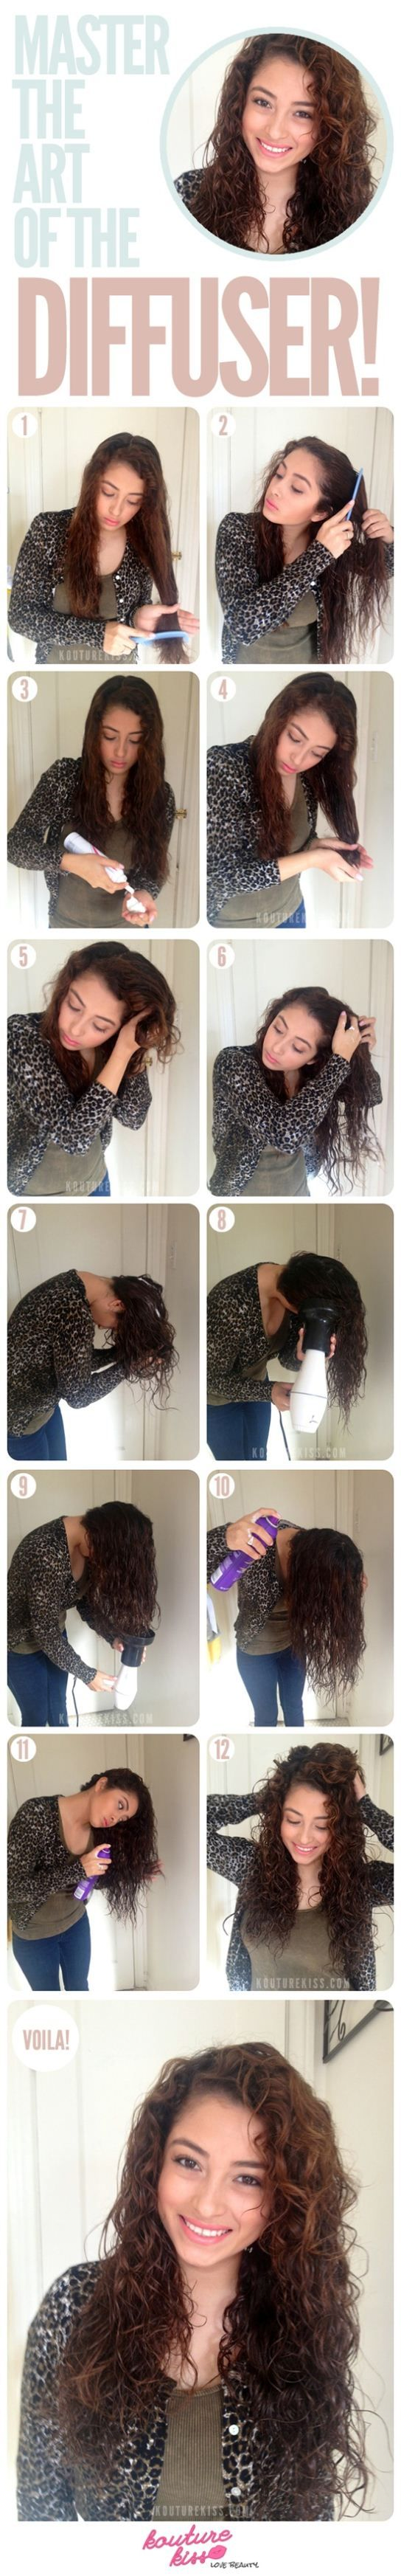 15 Life Changing Ways To Tame Frizzy Hair Tangled Pinterest